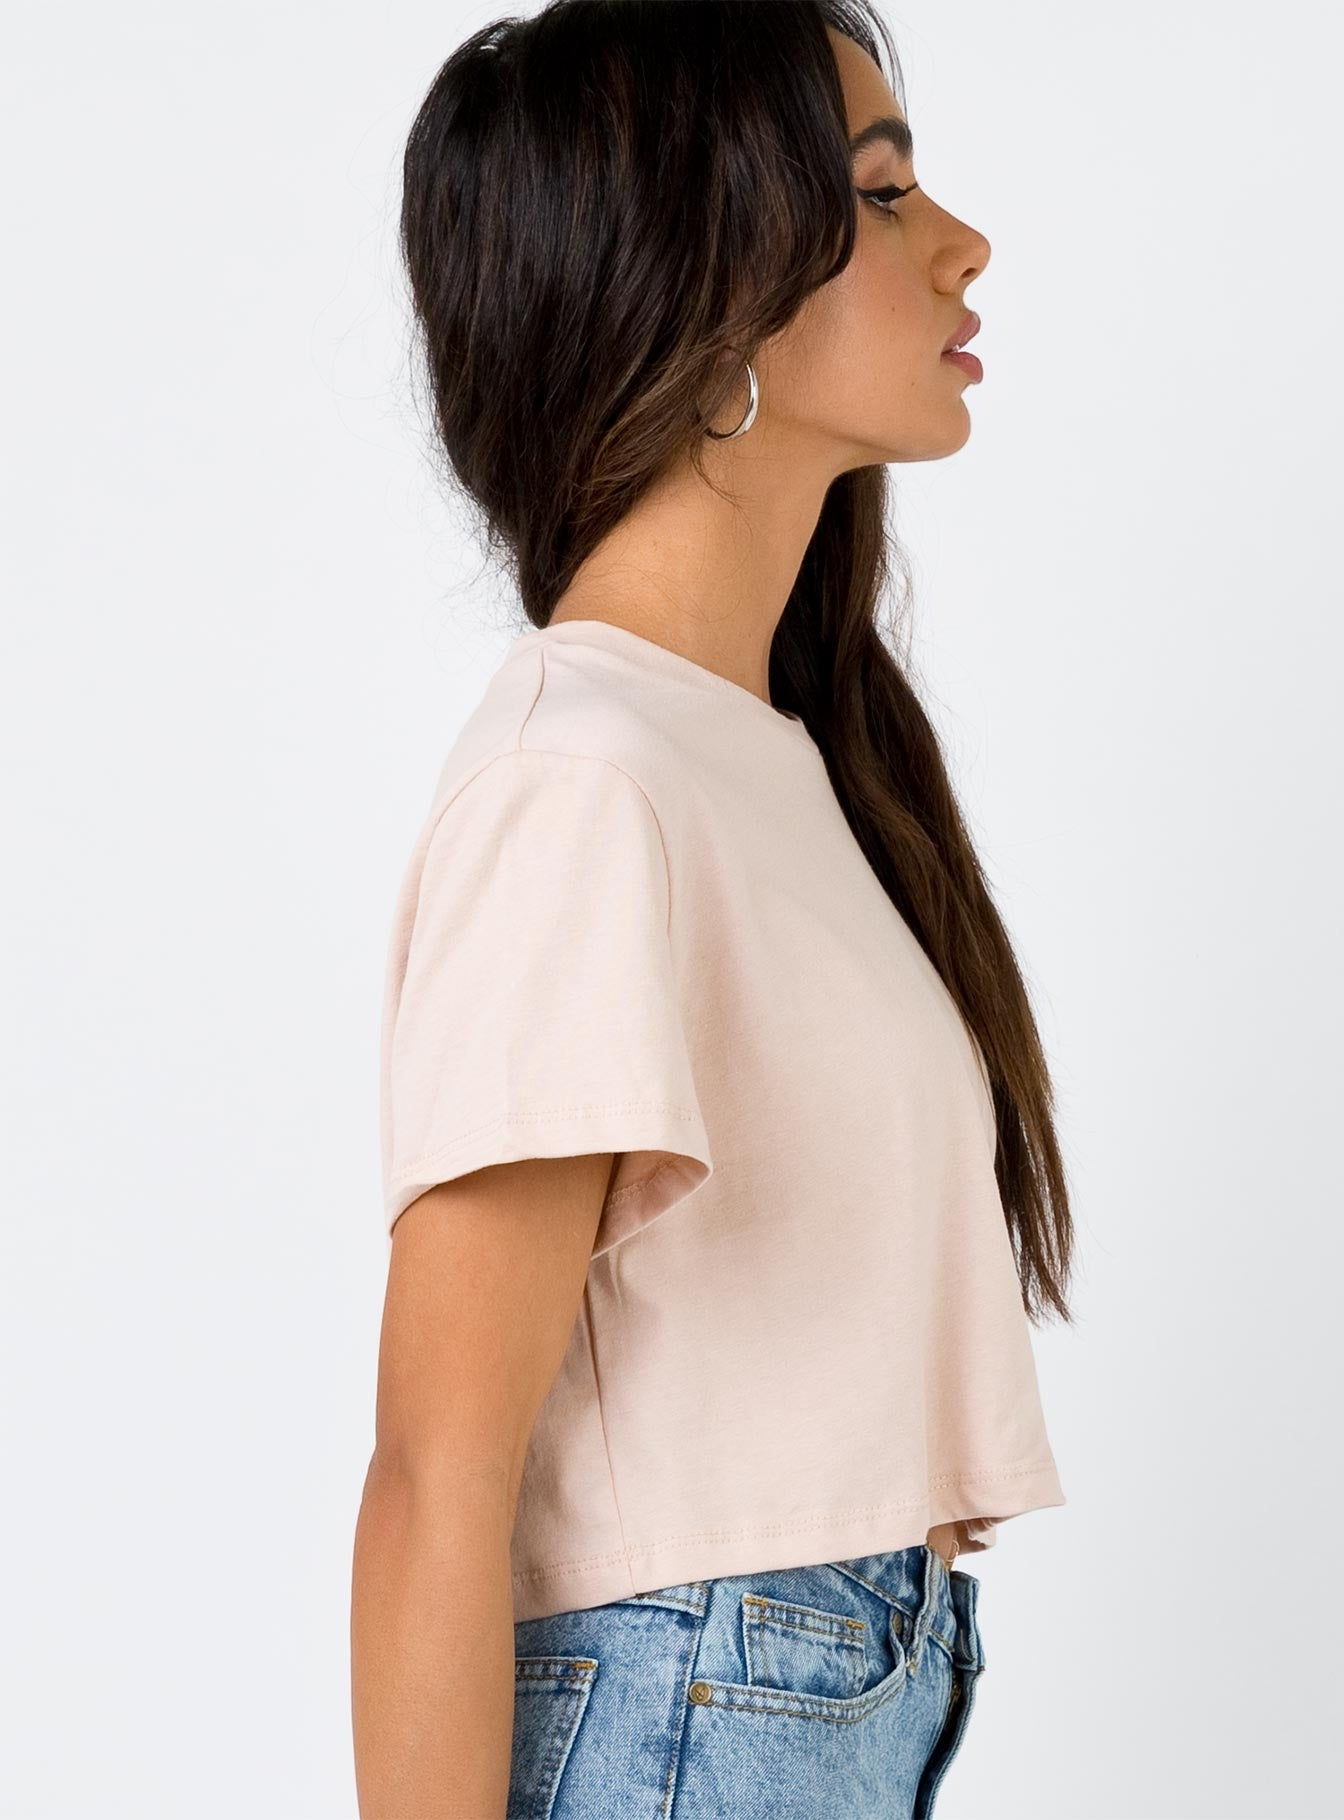 Ulterior Motive Cropped Tee Dusty Pink